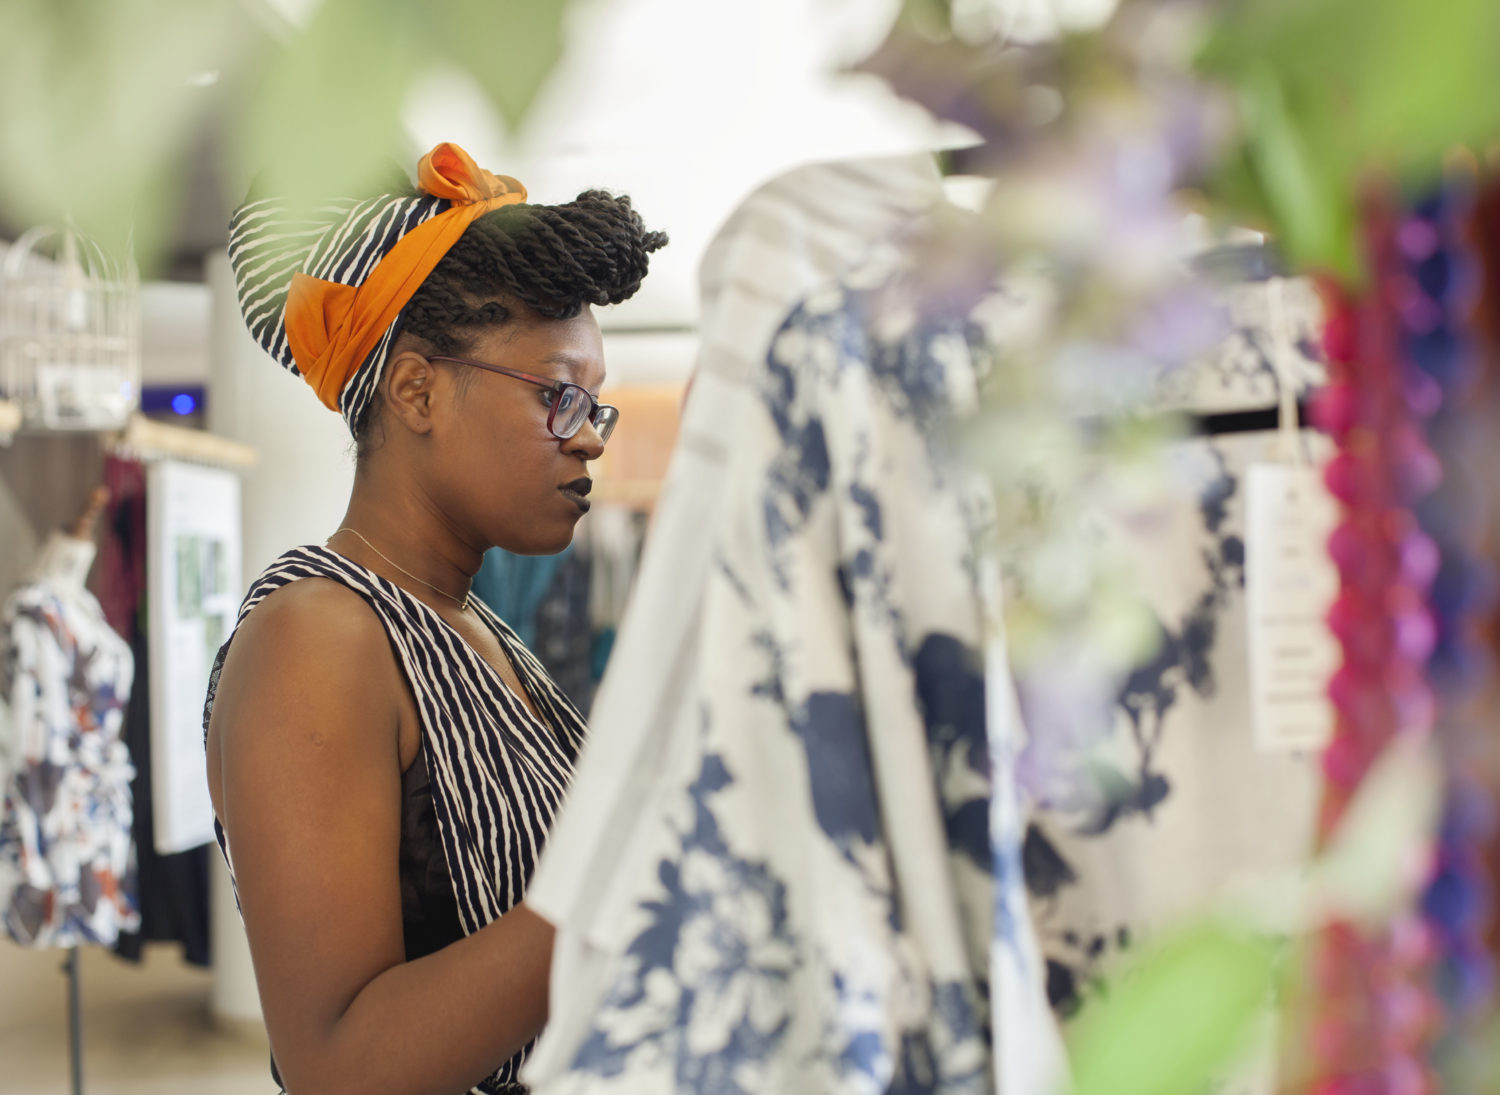 Mathematics, Design, Fashion and Art: Inside the Intriguing New Diarrablu Store in Dakar